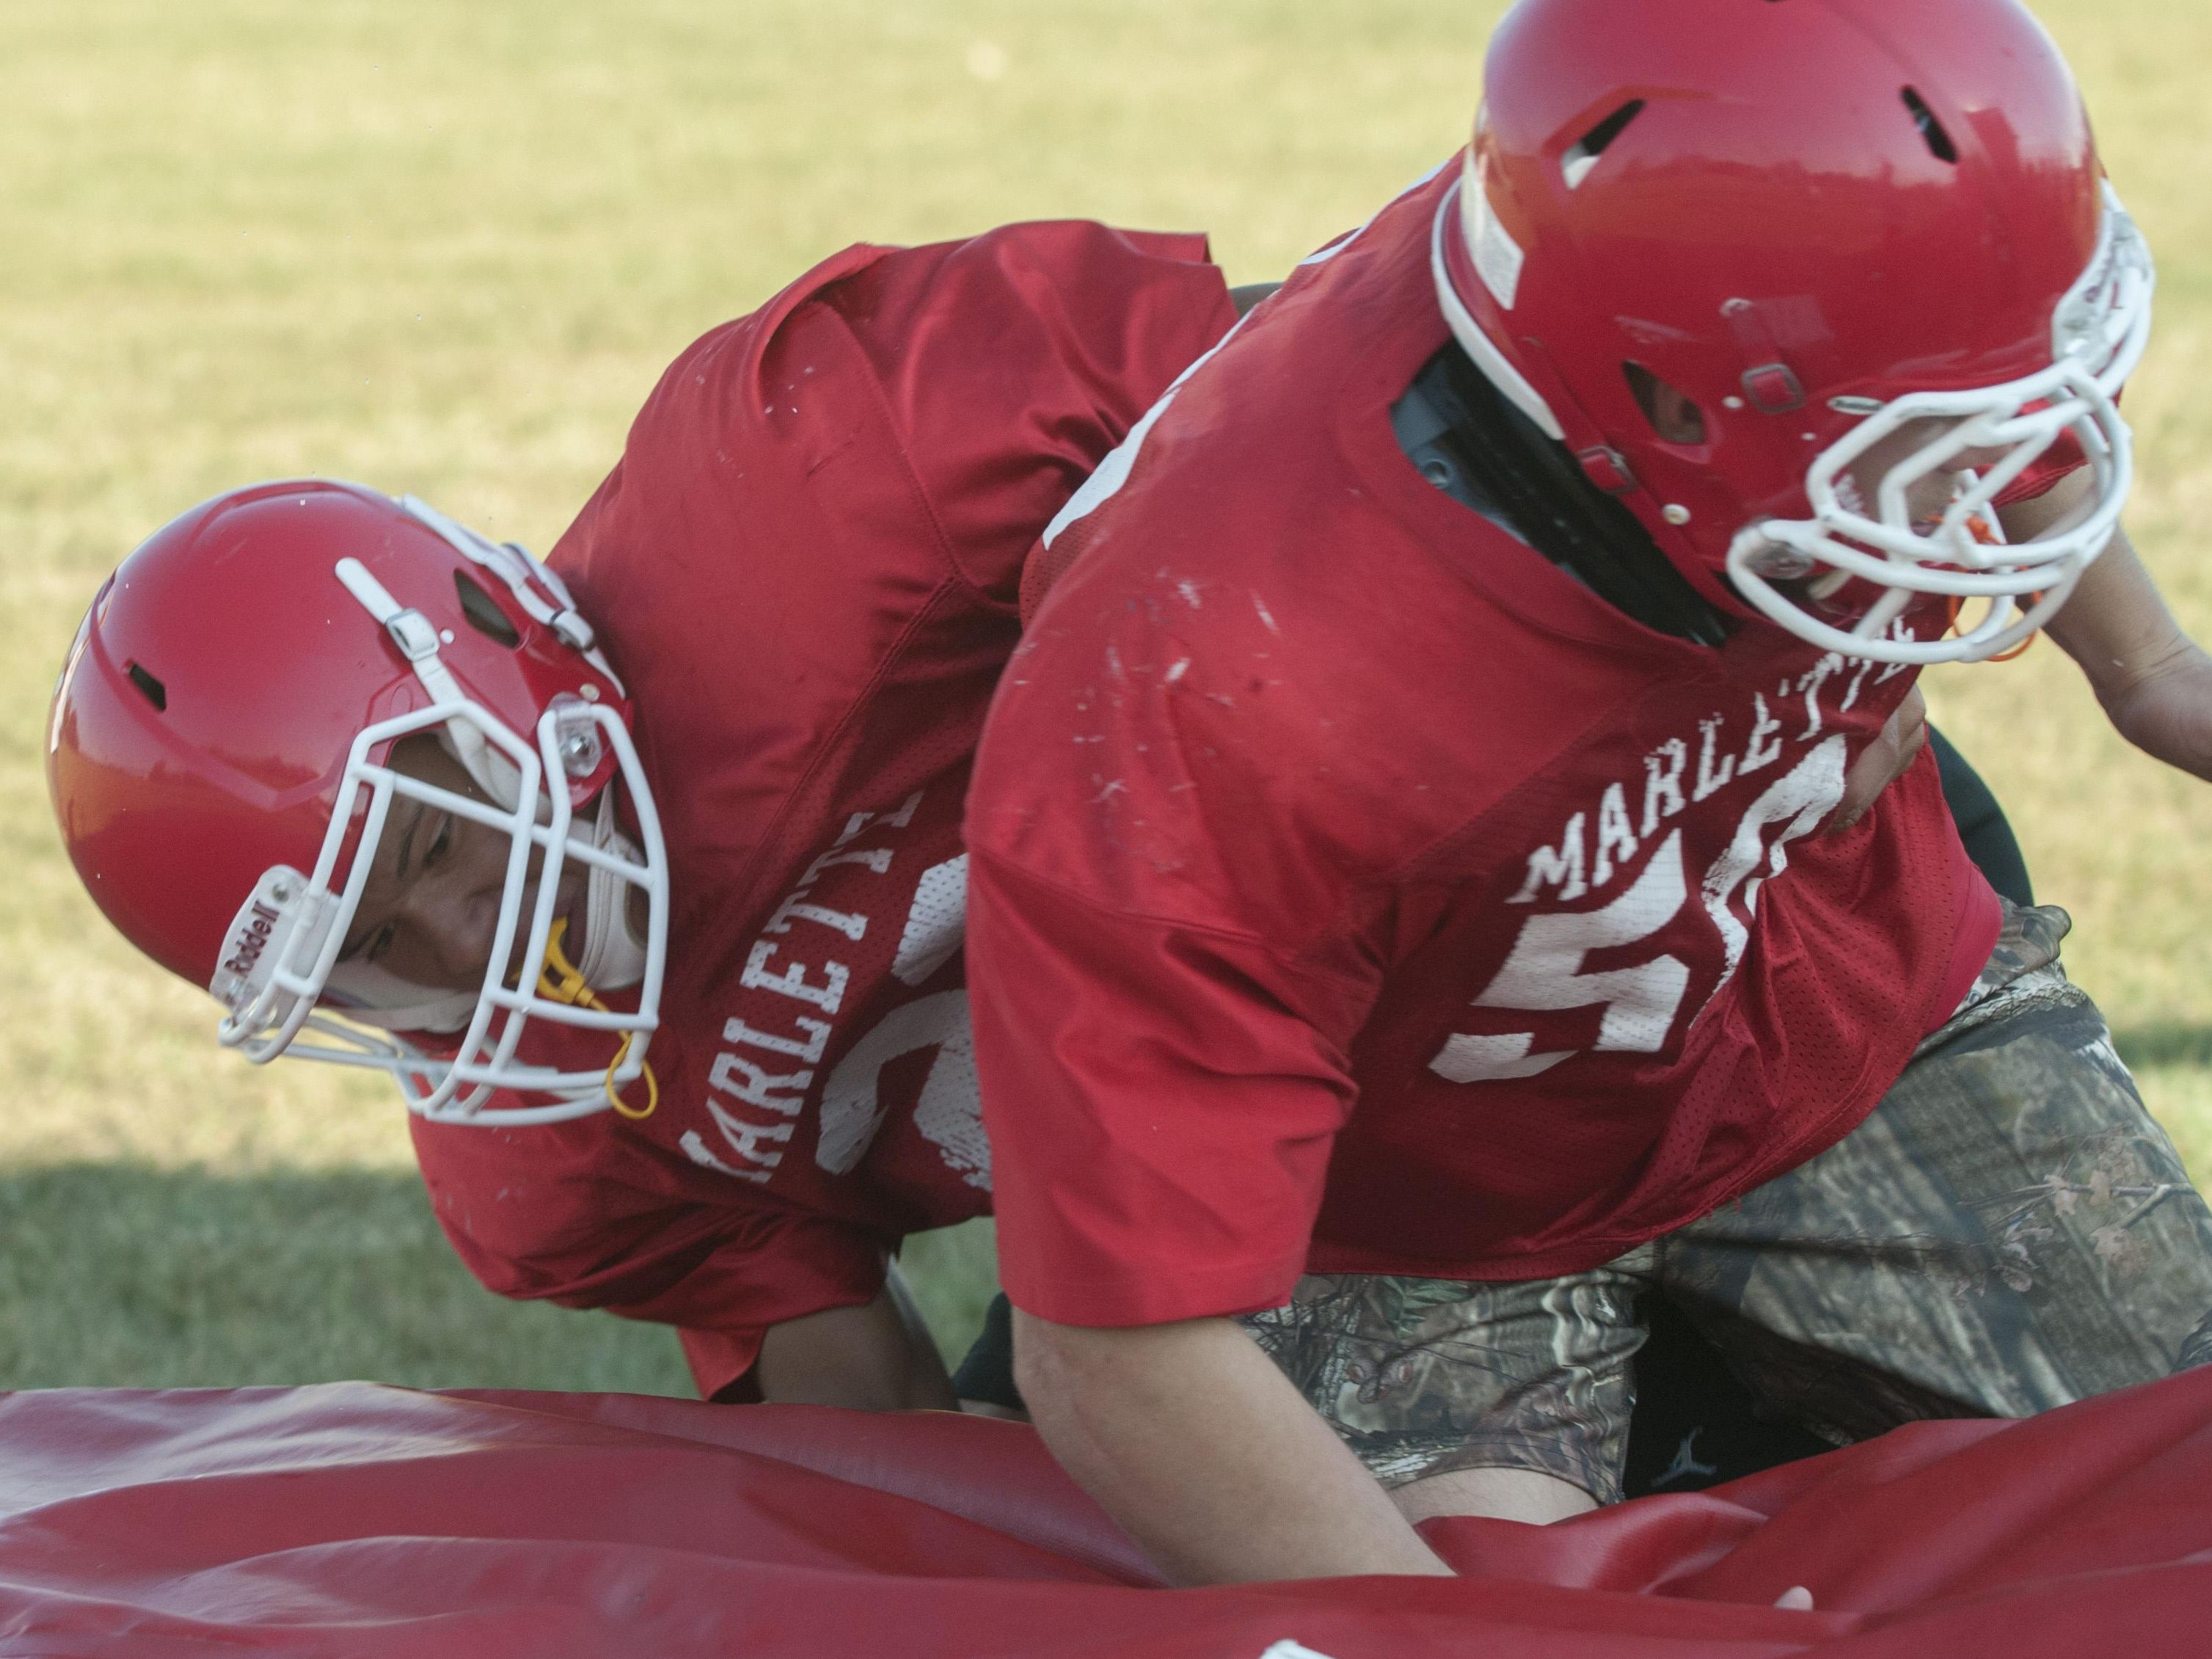 Marlette's Isaac Dale tackles teammate Chorben Chisholm Wednesday, Aug. 10 , 2016 during their football practice at Marlette High School.